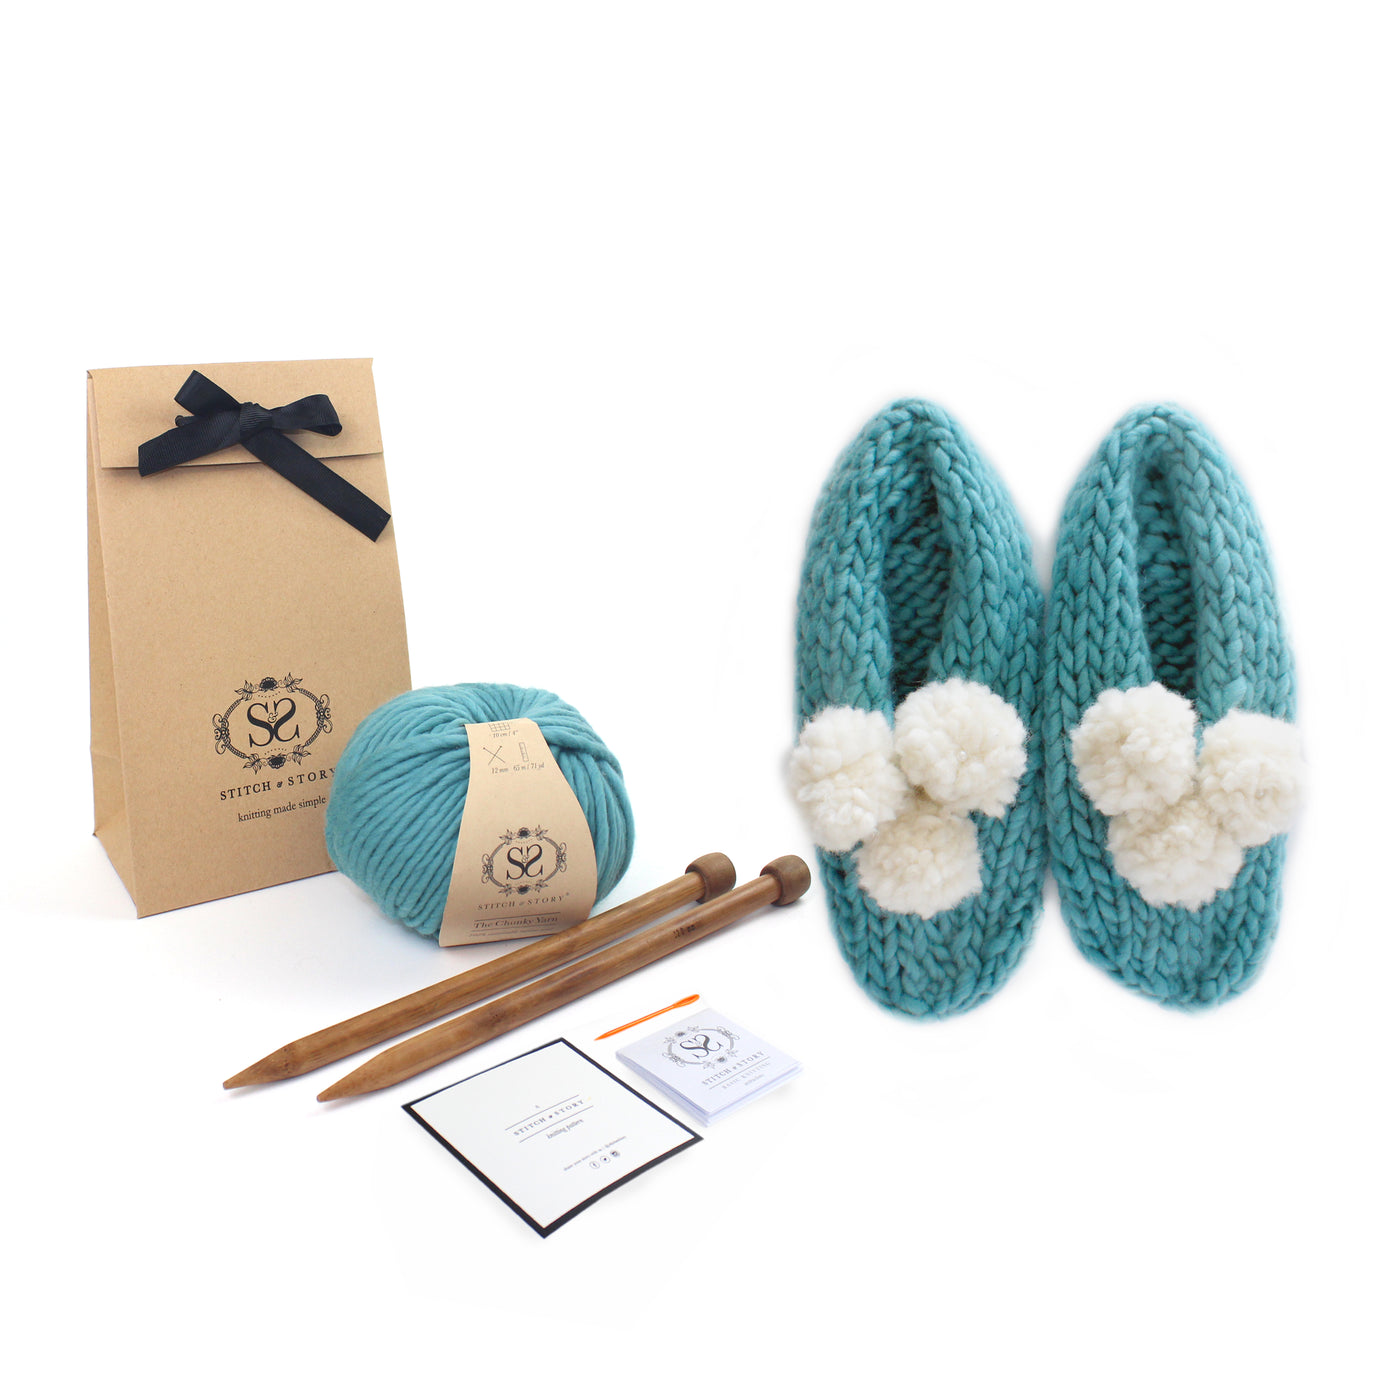 Knitting Kit - Lola Pom slippers stone teal